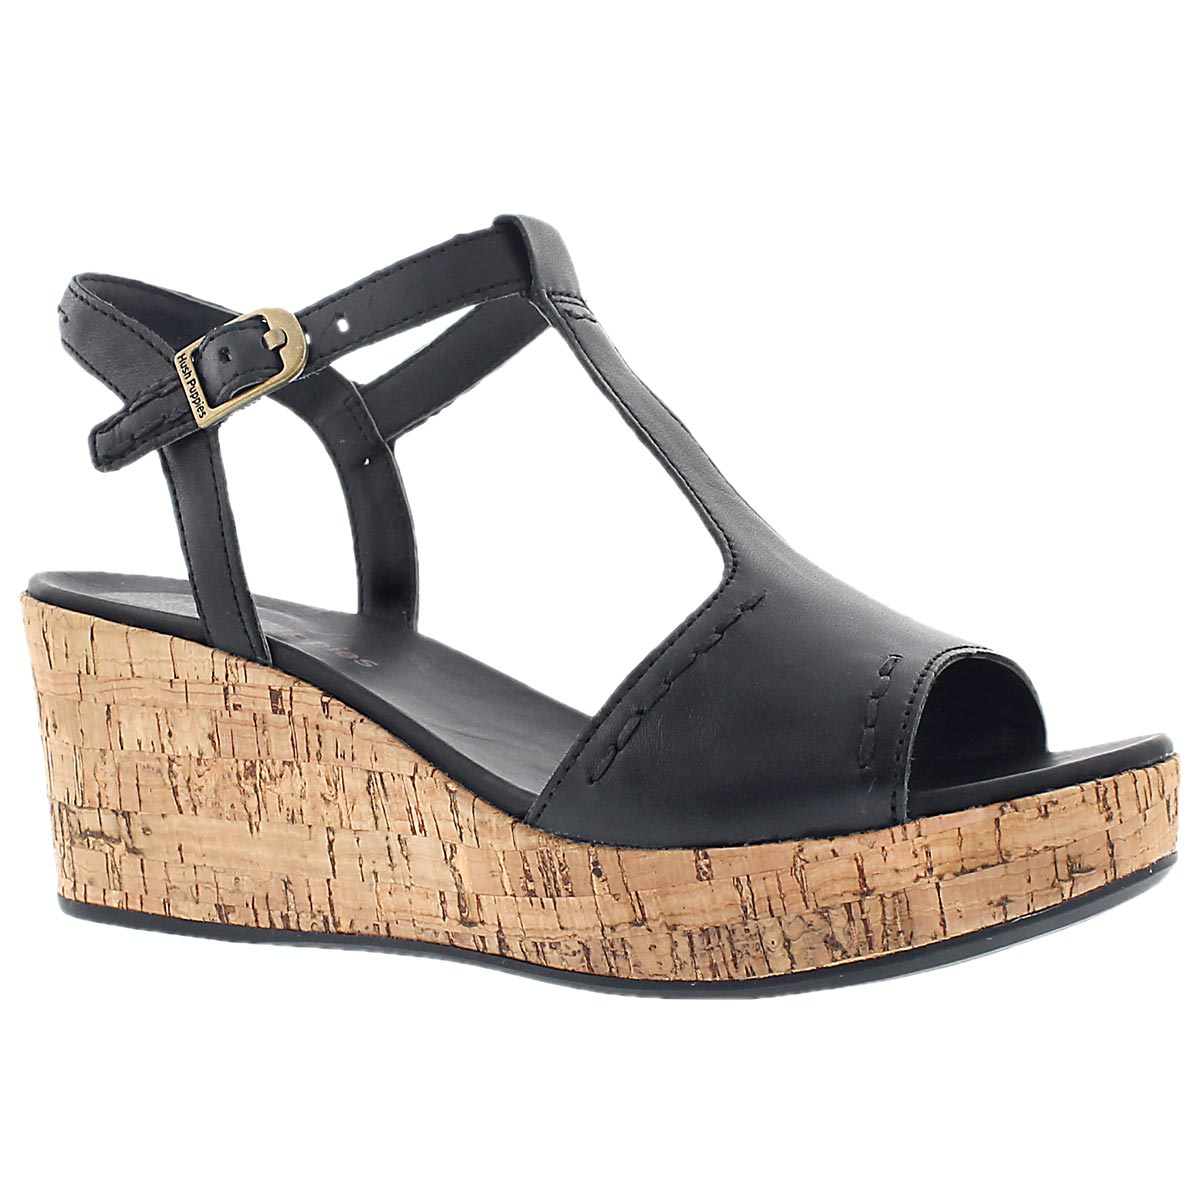 Women's BLAKELY DURANTE blk tstrp wedge sandals